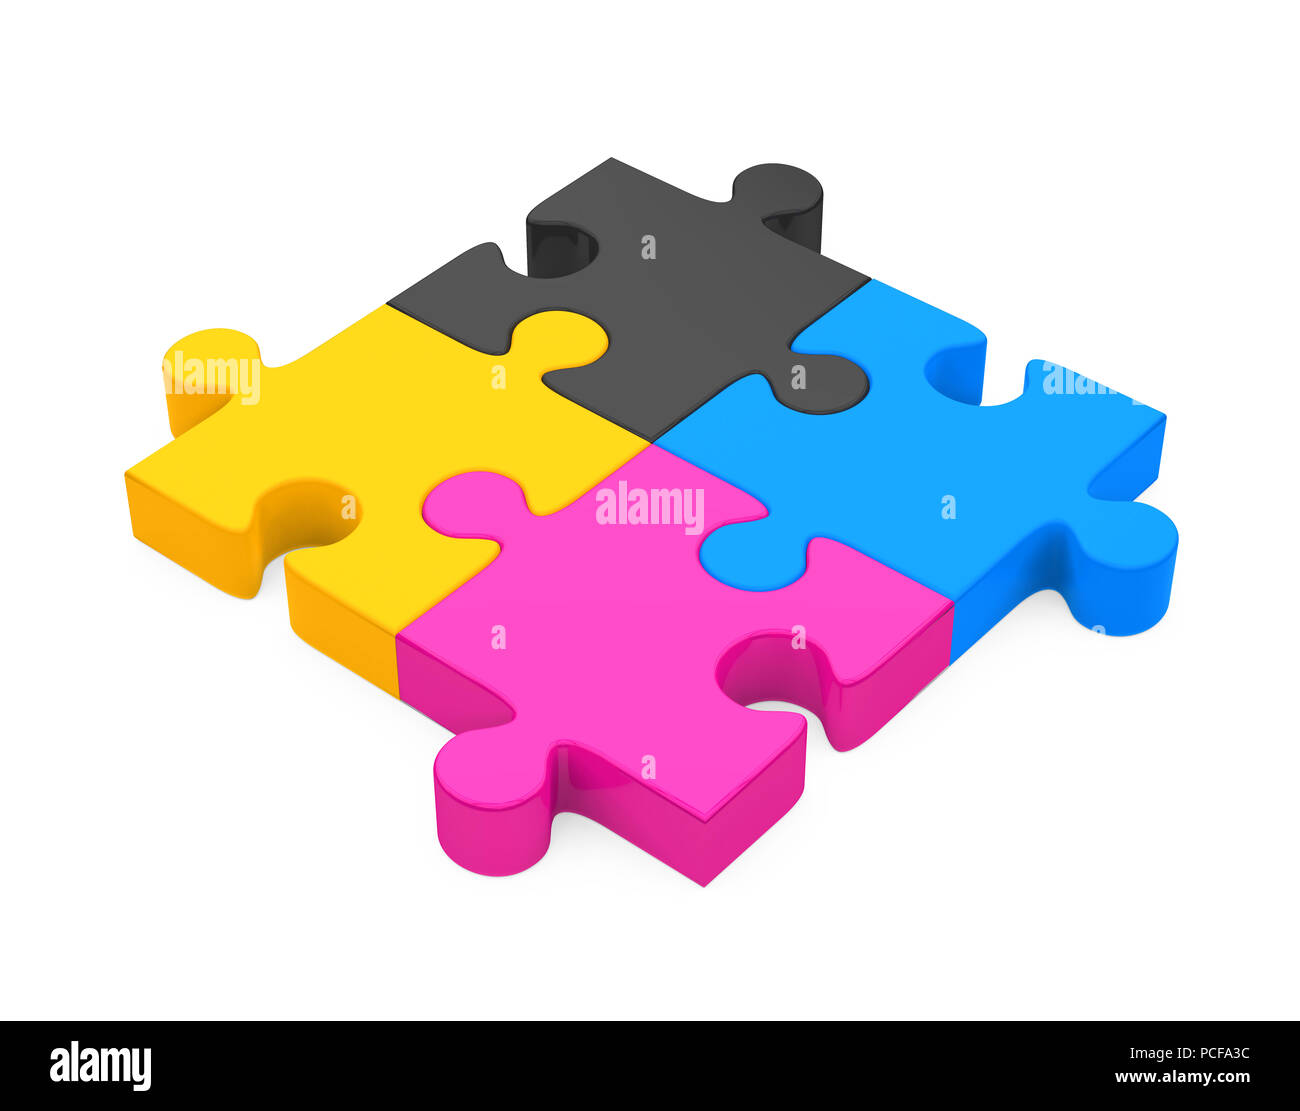 CMYK Jigsaw Puzzle Isolated - Stock Image